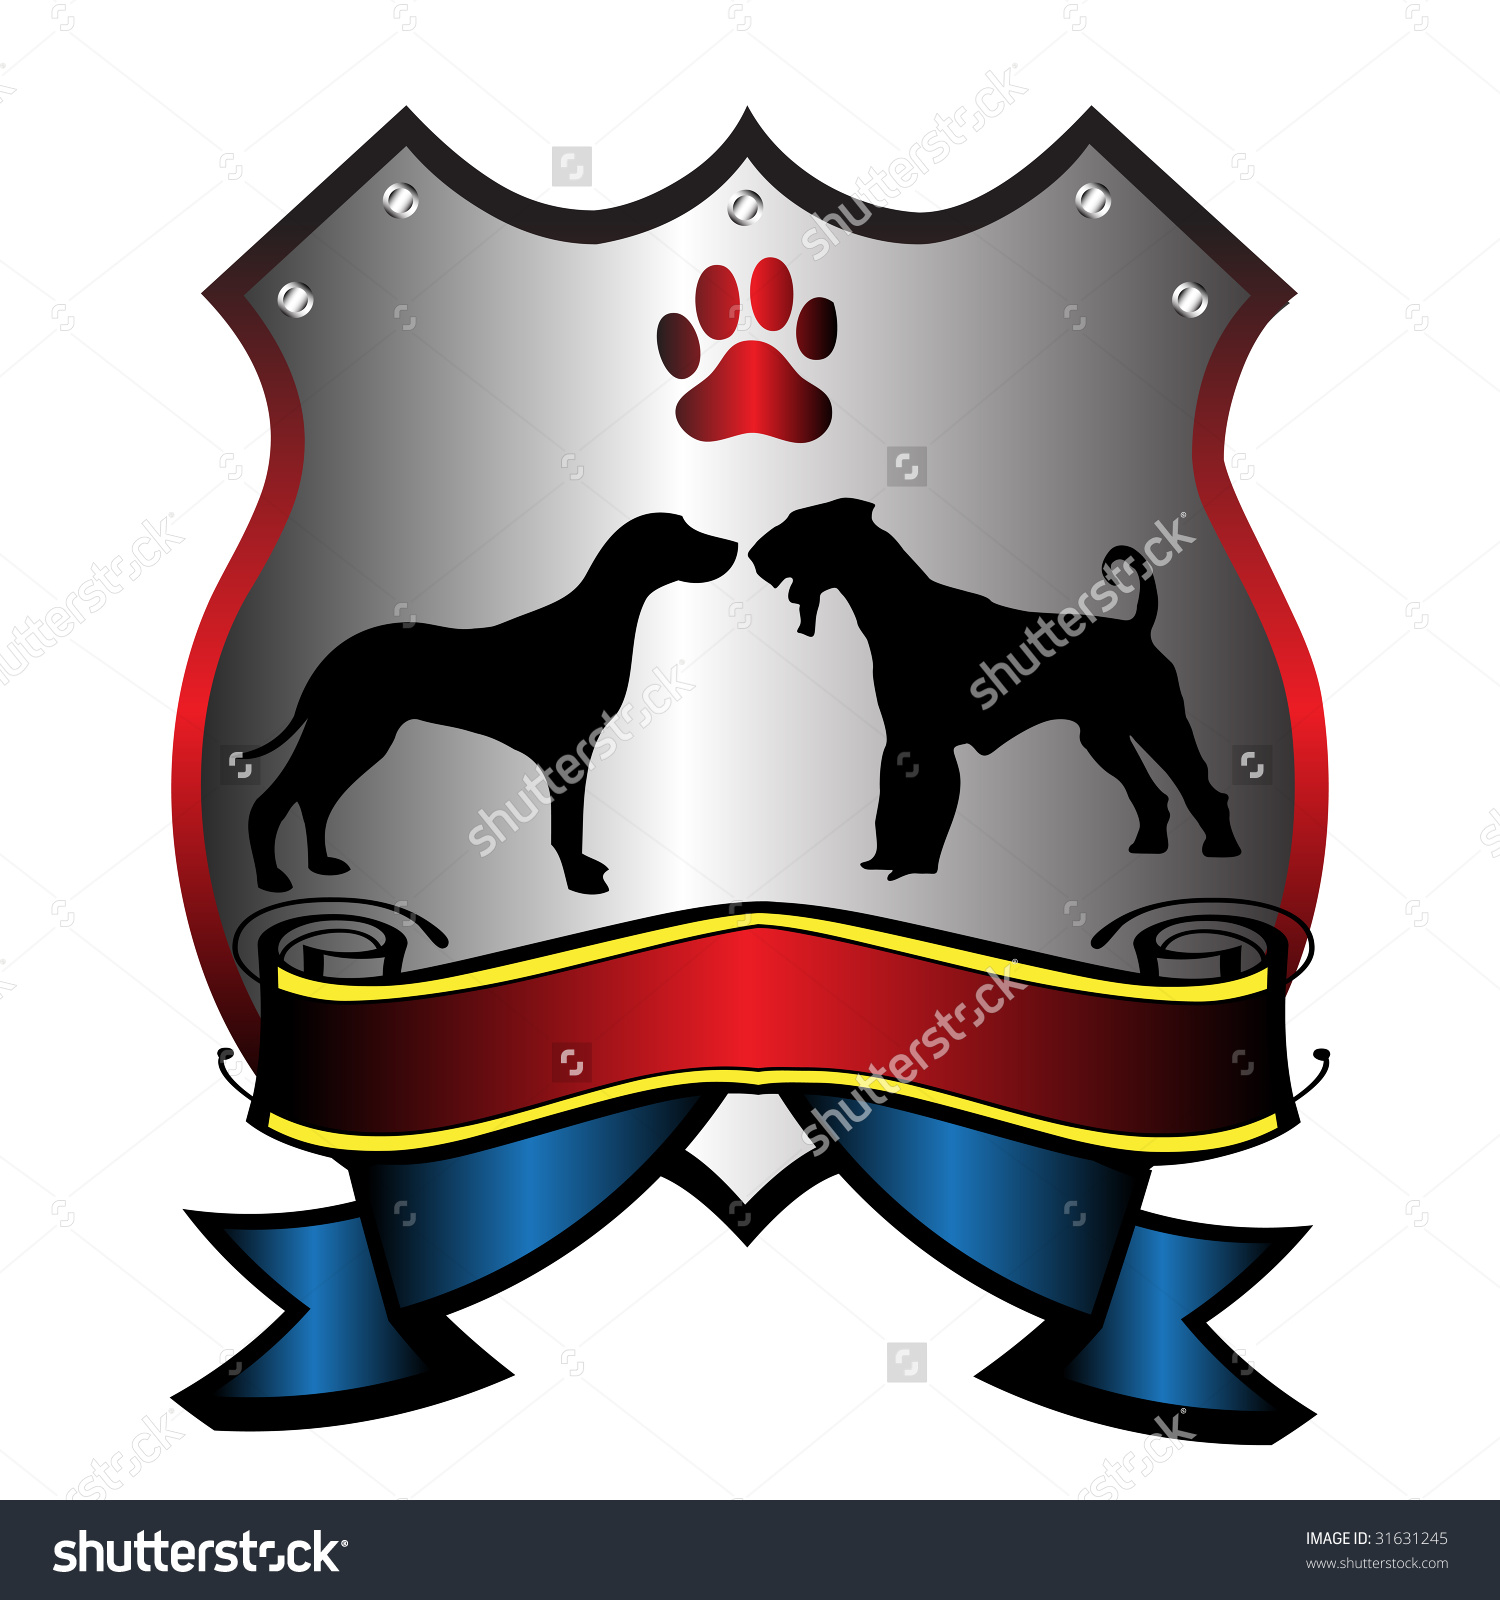 Abstract Colorful Security Shield With Paw Print And Dog Shapes.